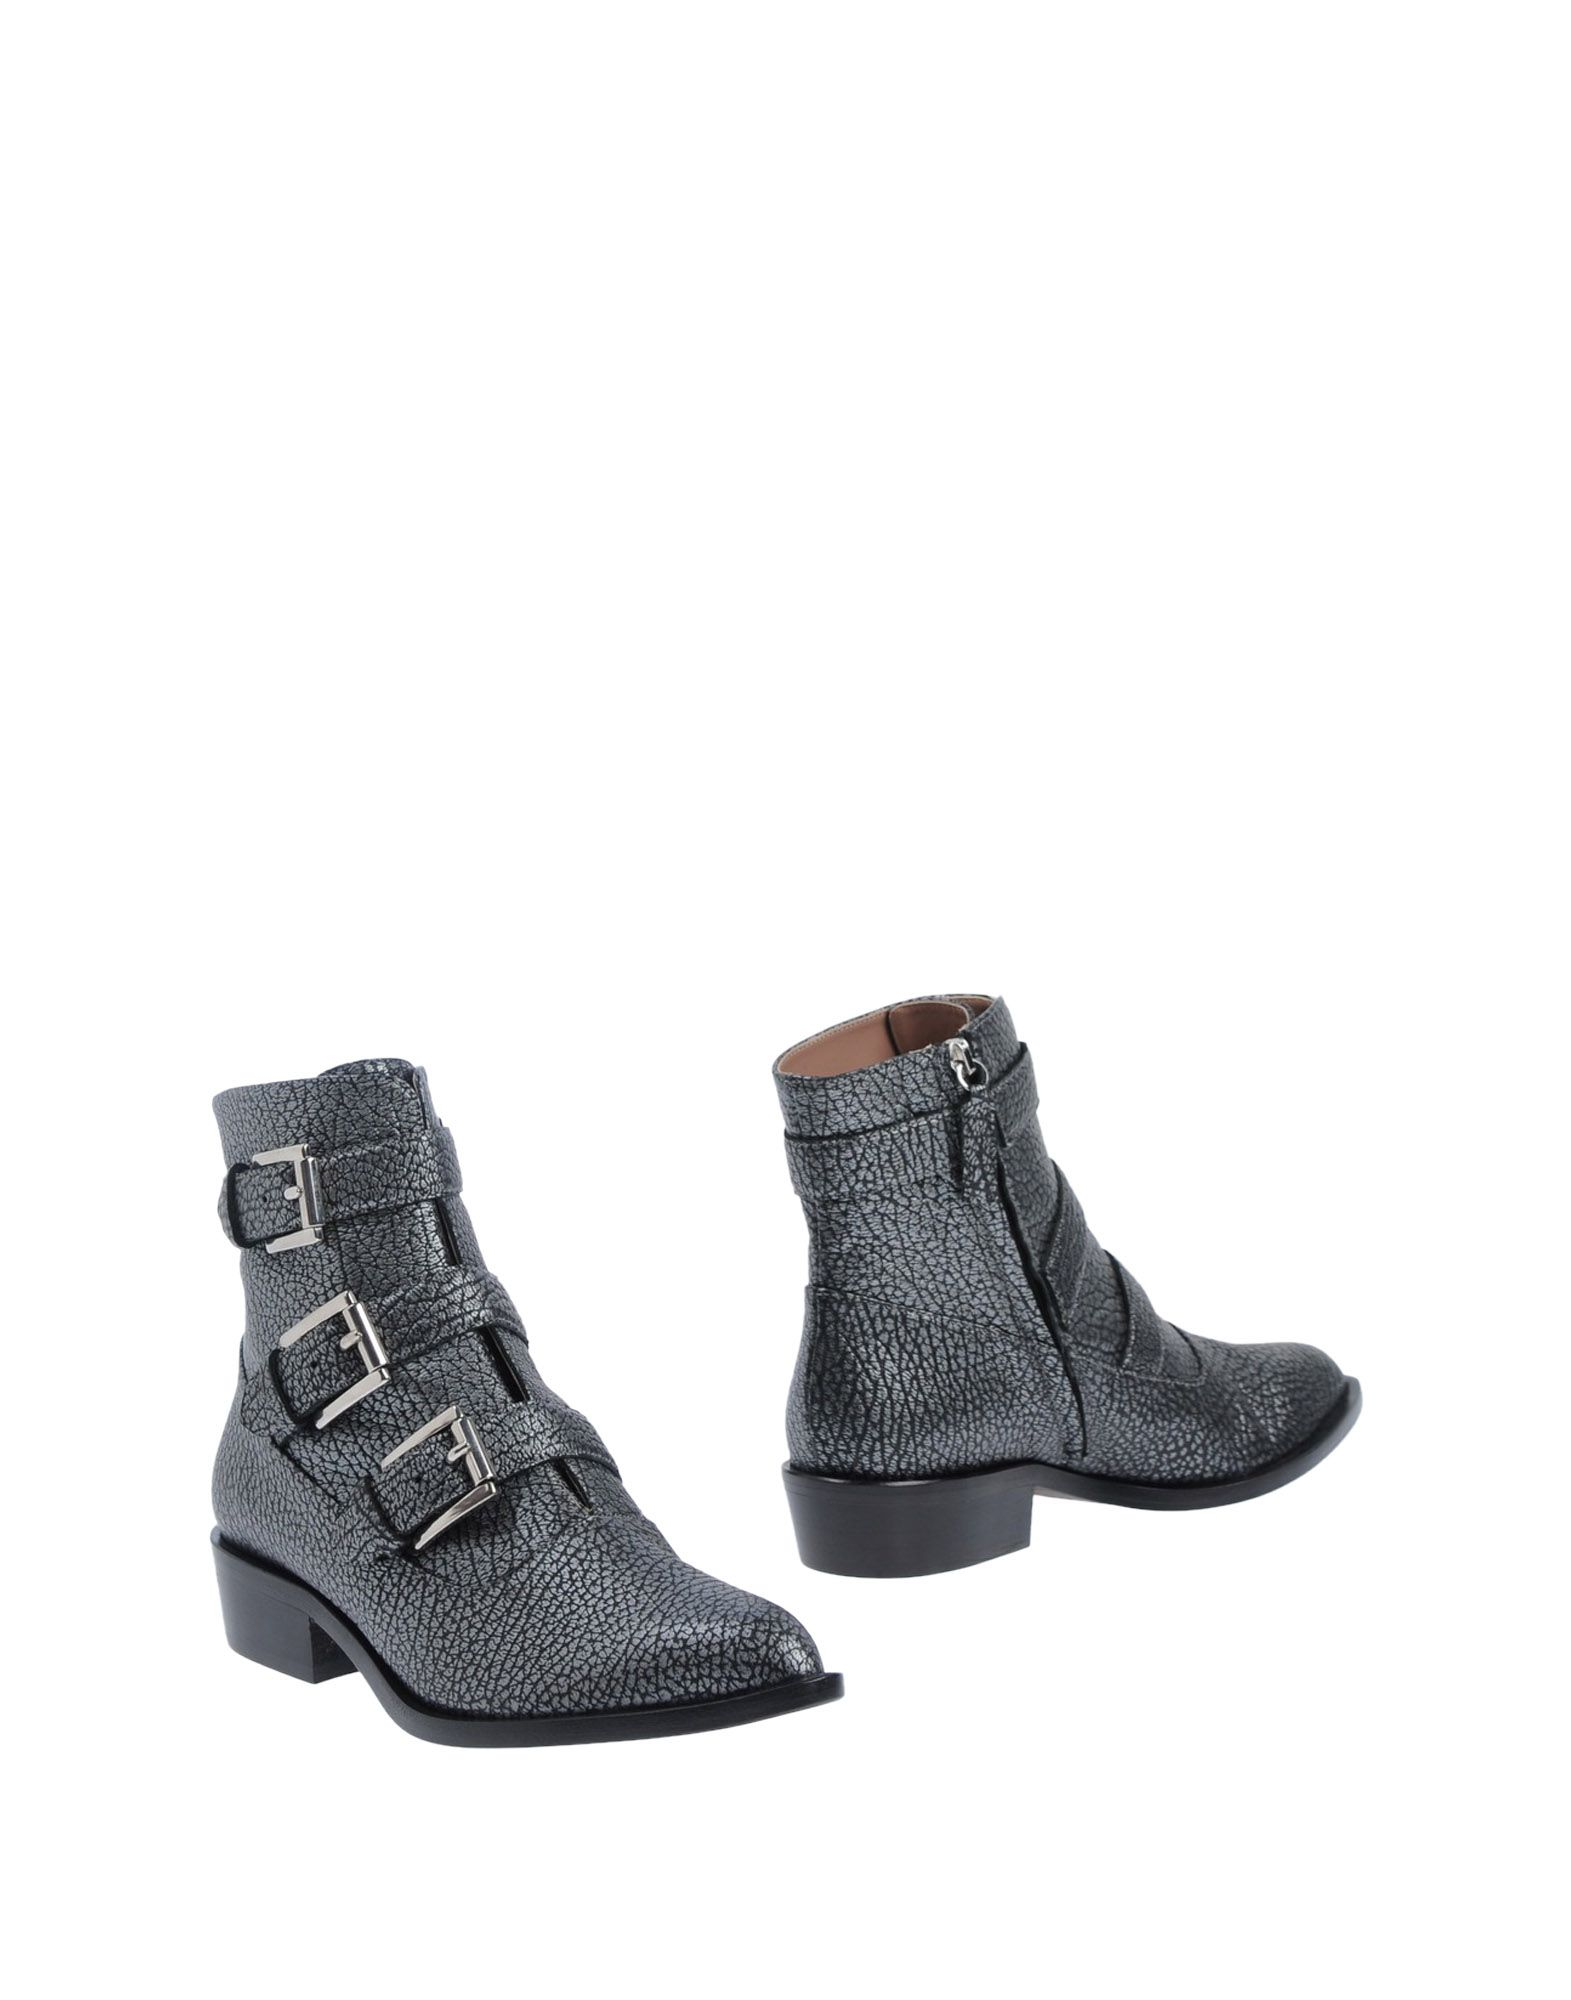 GIANNA MELIANI Ankle Boot in Grey